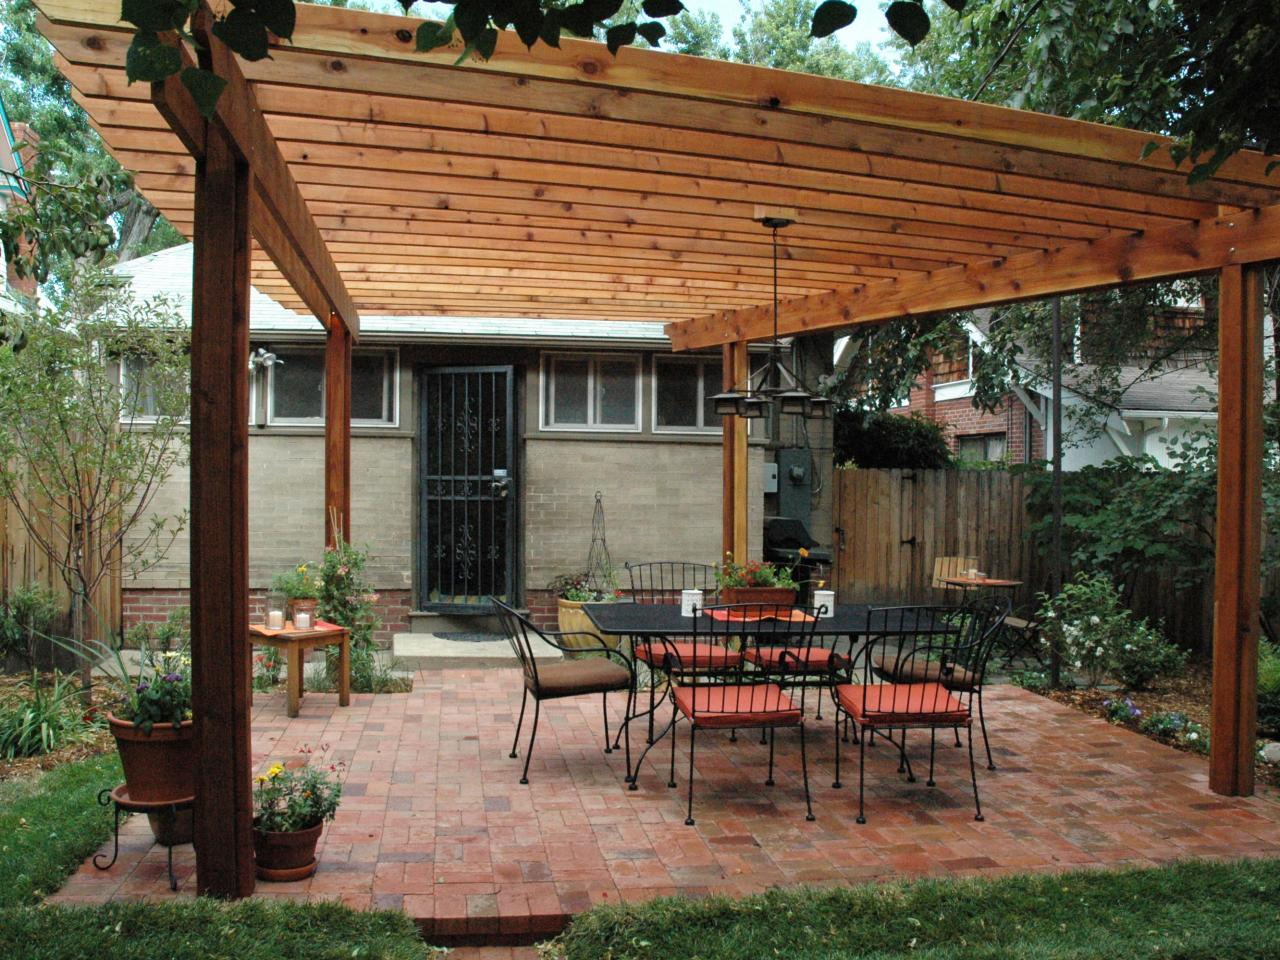 Arbor Installation-Mesquite TX Professional Landscapers & Outdoor Living Designs-We offer Landscape Design, Outdoor Patios & Pergolas, Outdoor Living Spaces, Stonescapes, Residential & Commercial Landscaping, Irrigation Installation & Repairs, Drainage Systems, Landscape Lighting, Outdoor Living Spaces, Tree Service, Lawn Service, and more.